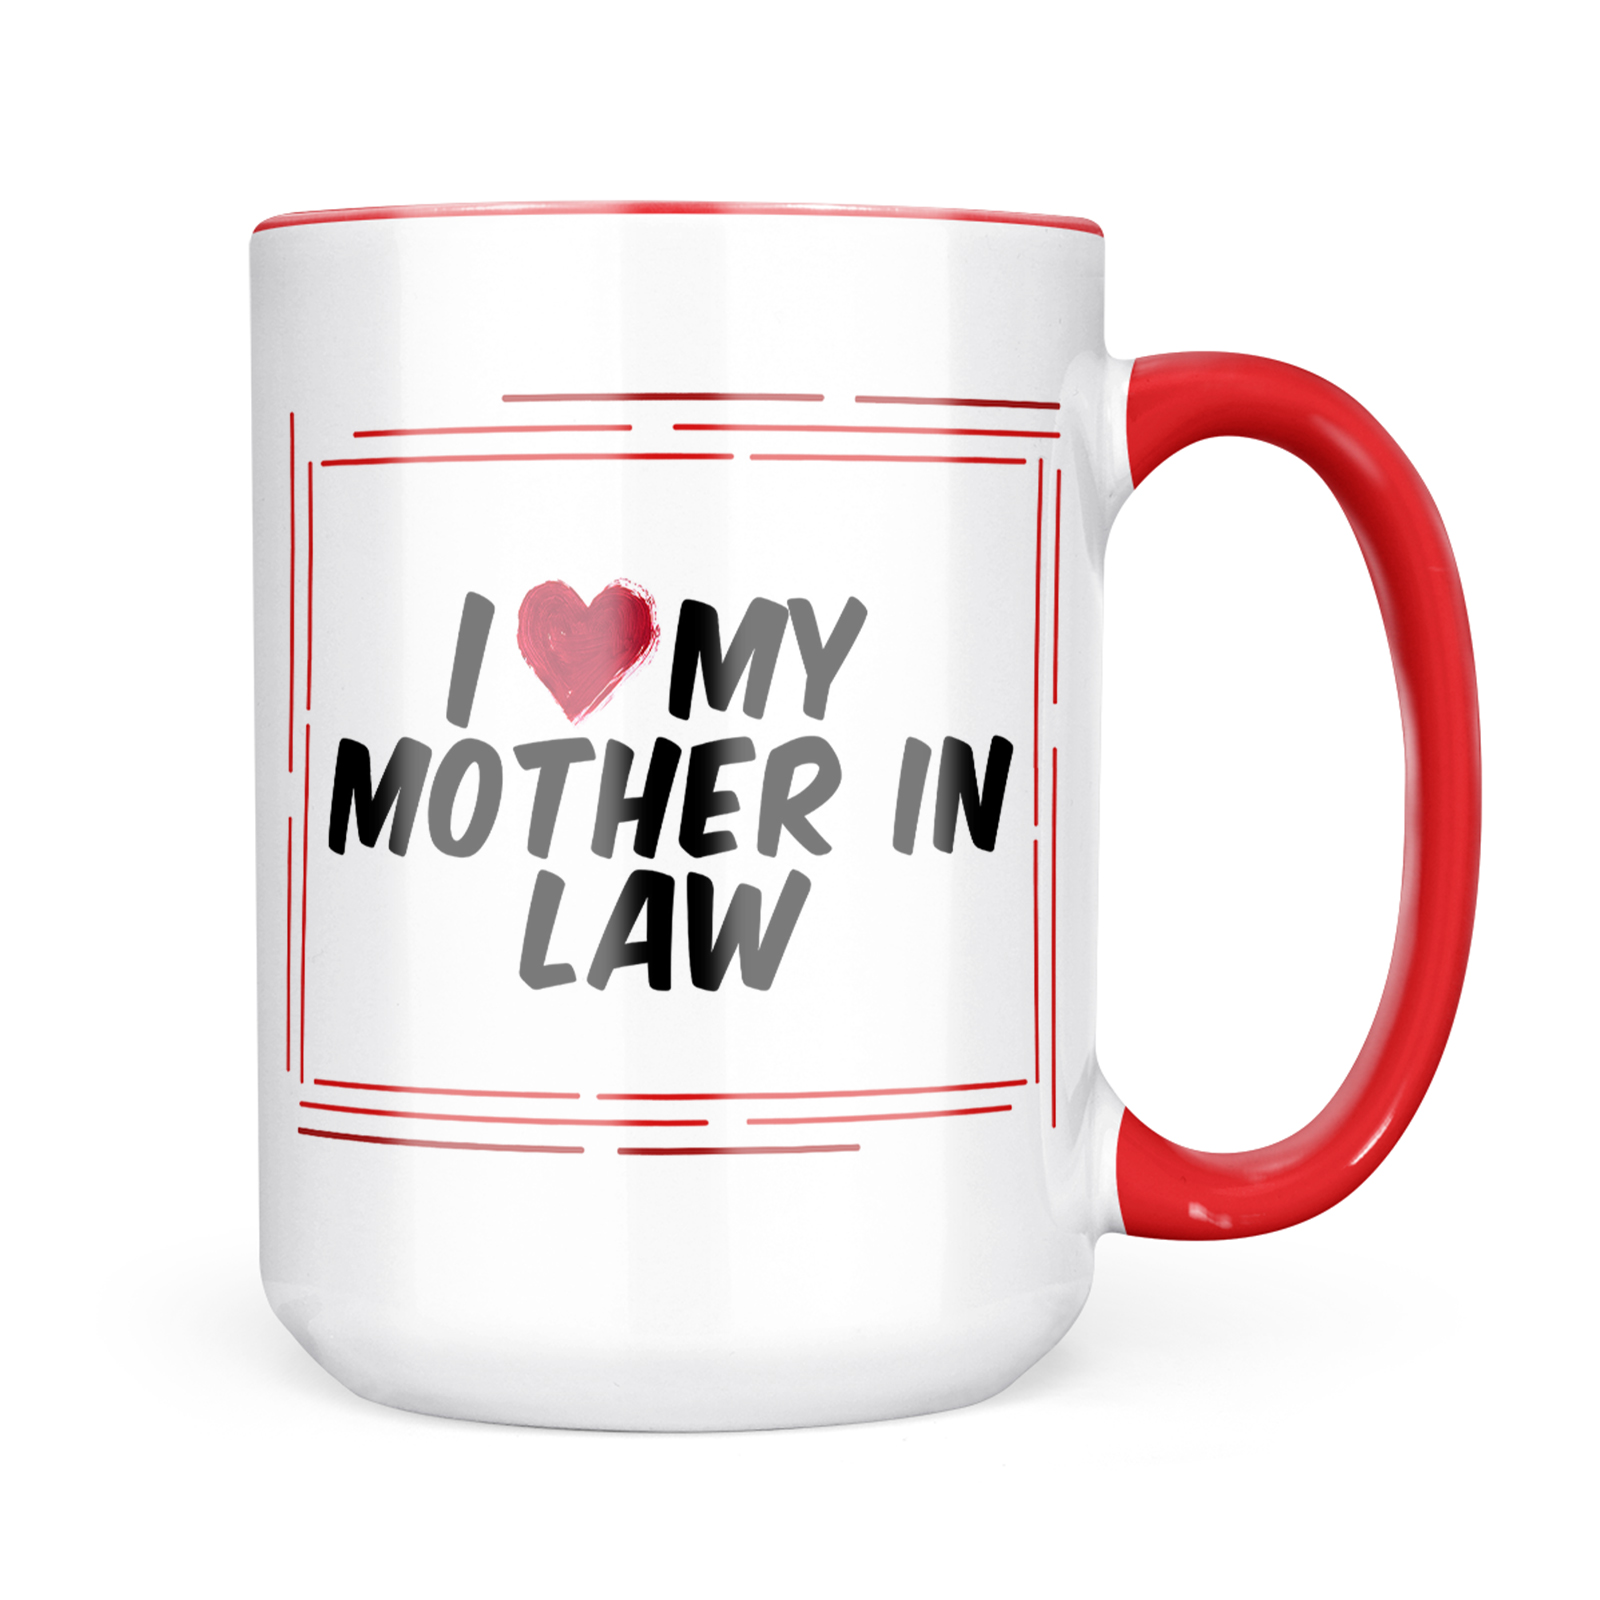 Neonblond I Heart Love My Mother In Law Mug Gift For Coffee Tea Lovers Walmart Com Walmart Com